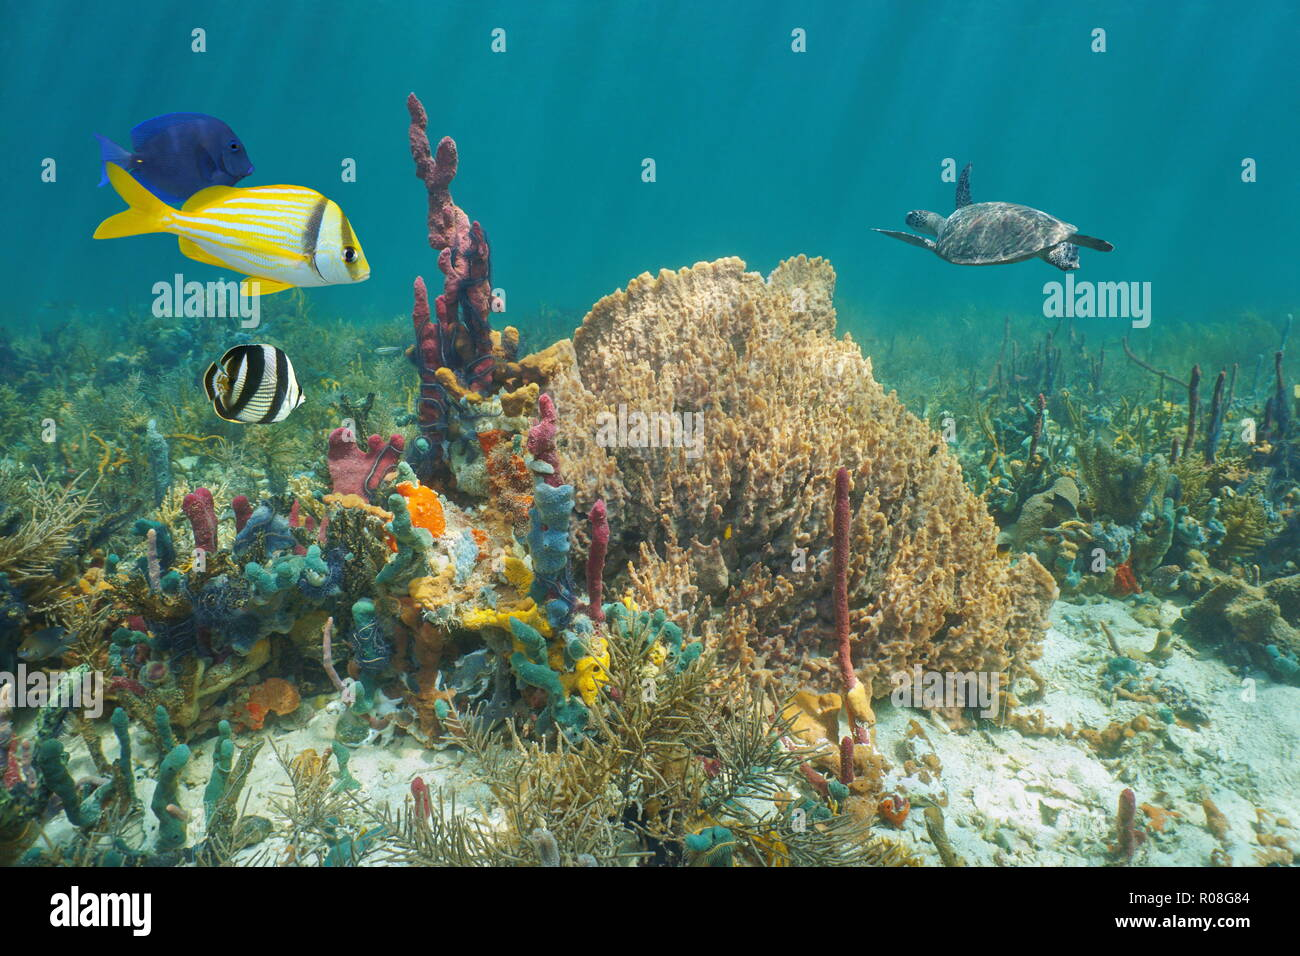 Colorful marine life in a coral reef of the Caribbean sea underwater, sea sponges with tropical fish and a turtle in background Stock Photo